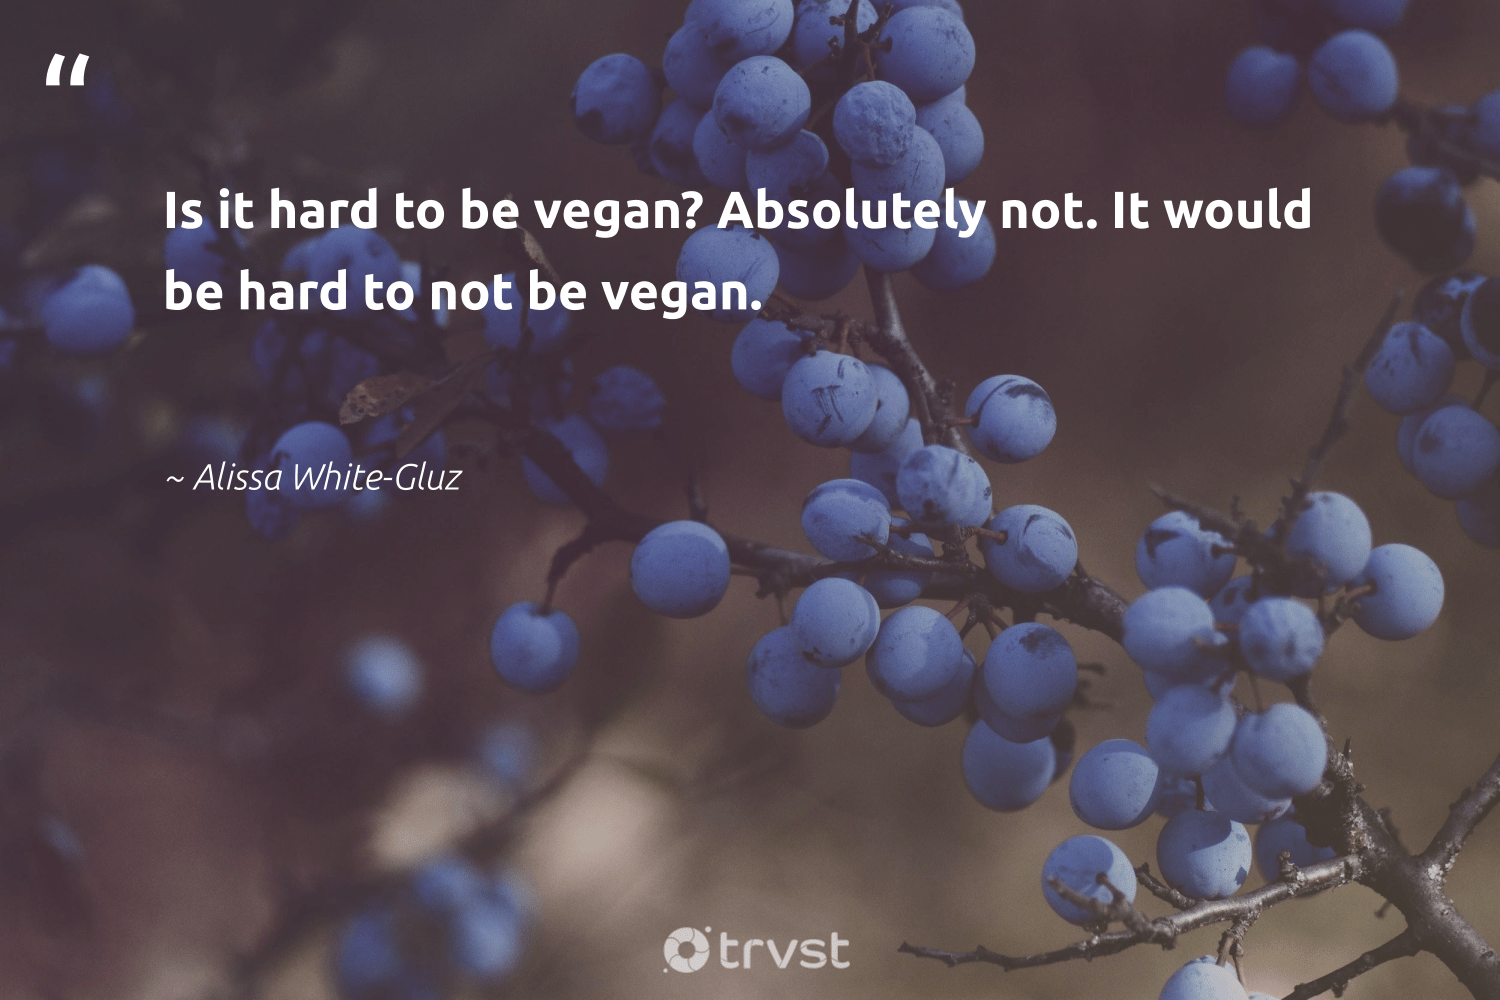 """Is it hard to be vegan? Absolutely not. It would be hard to not be vegan.""  - Alissa White-Gluz #trvst #quotes #vegan #veganfood #greenliving #green #gogreen #vegetarian #sustainability #fashion #bethechange #plantbased"